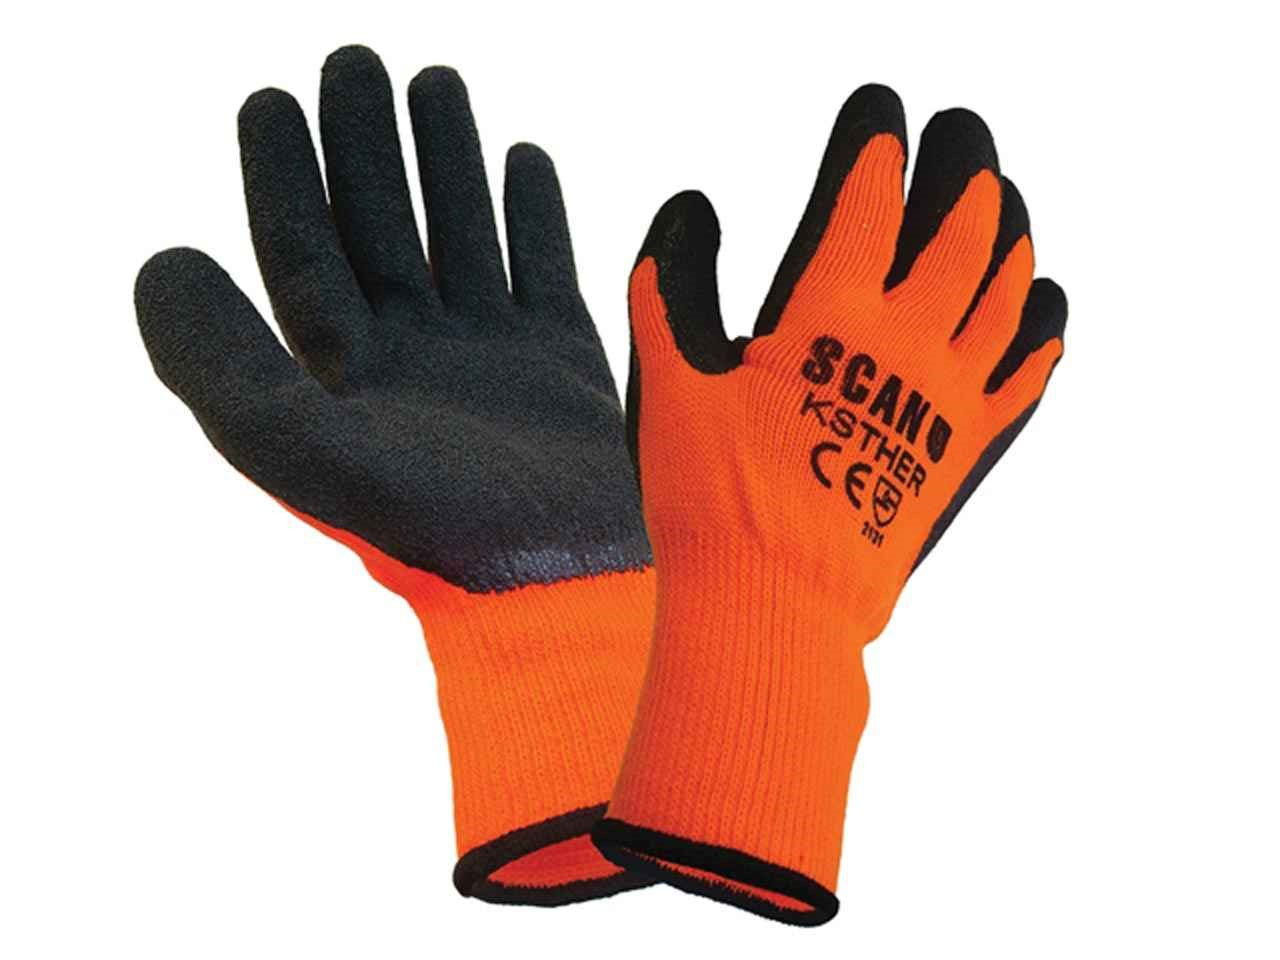 Scan Hi-Vis Latex Thermal Gloves - Meduim (8) (Pack of 5 Pairs)